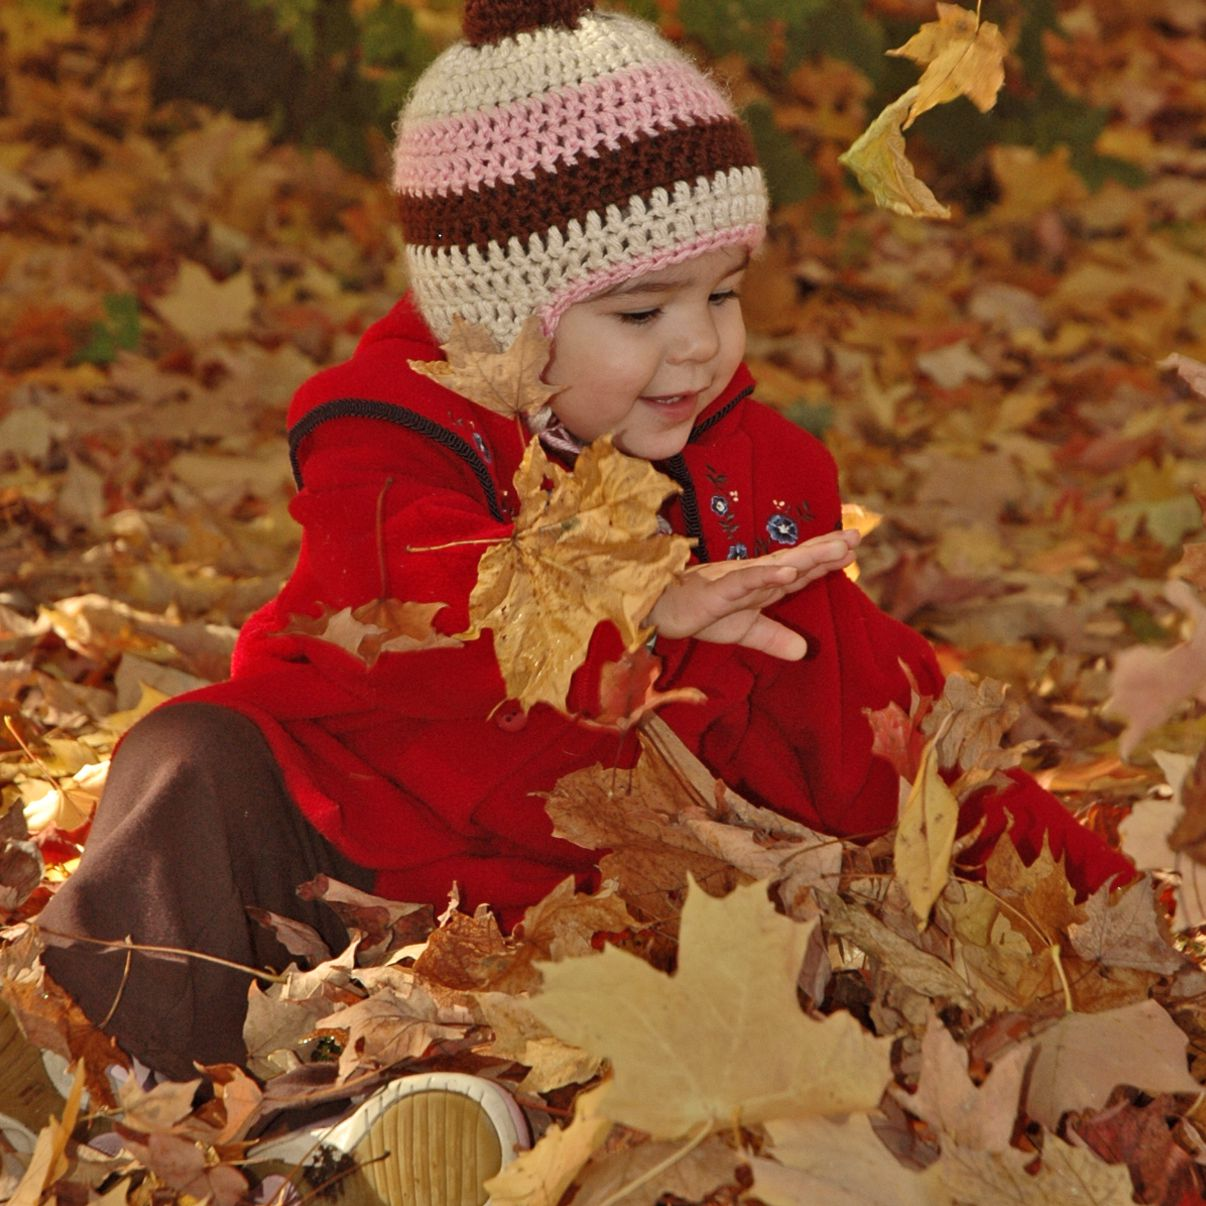 Fall Color Photoshoot Ideas of Your Child